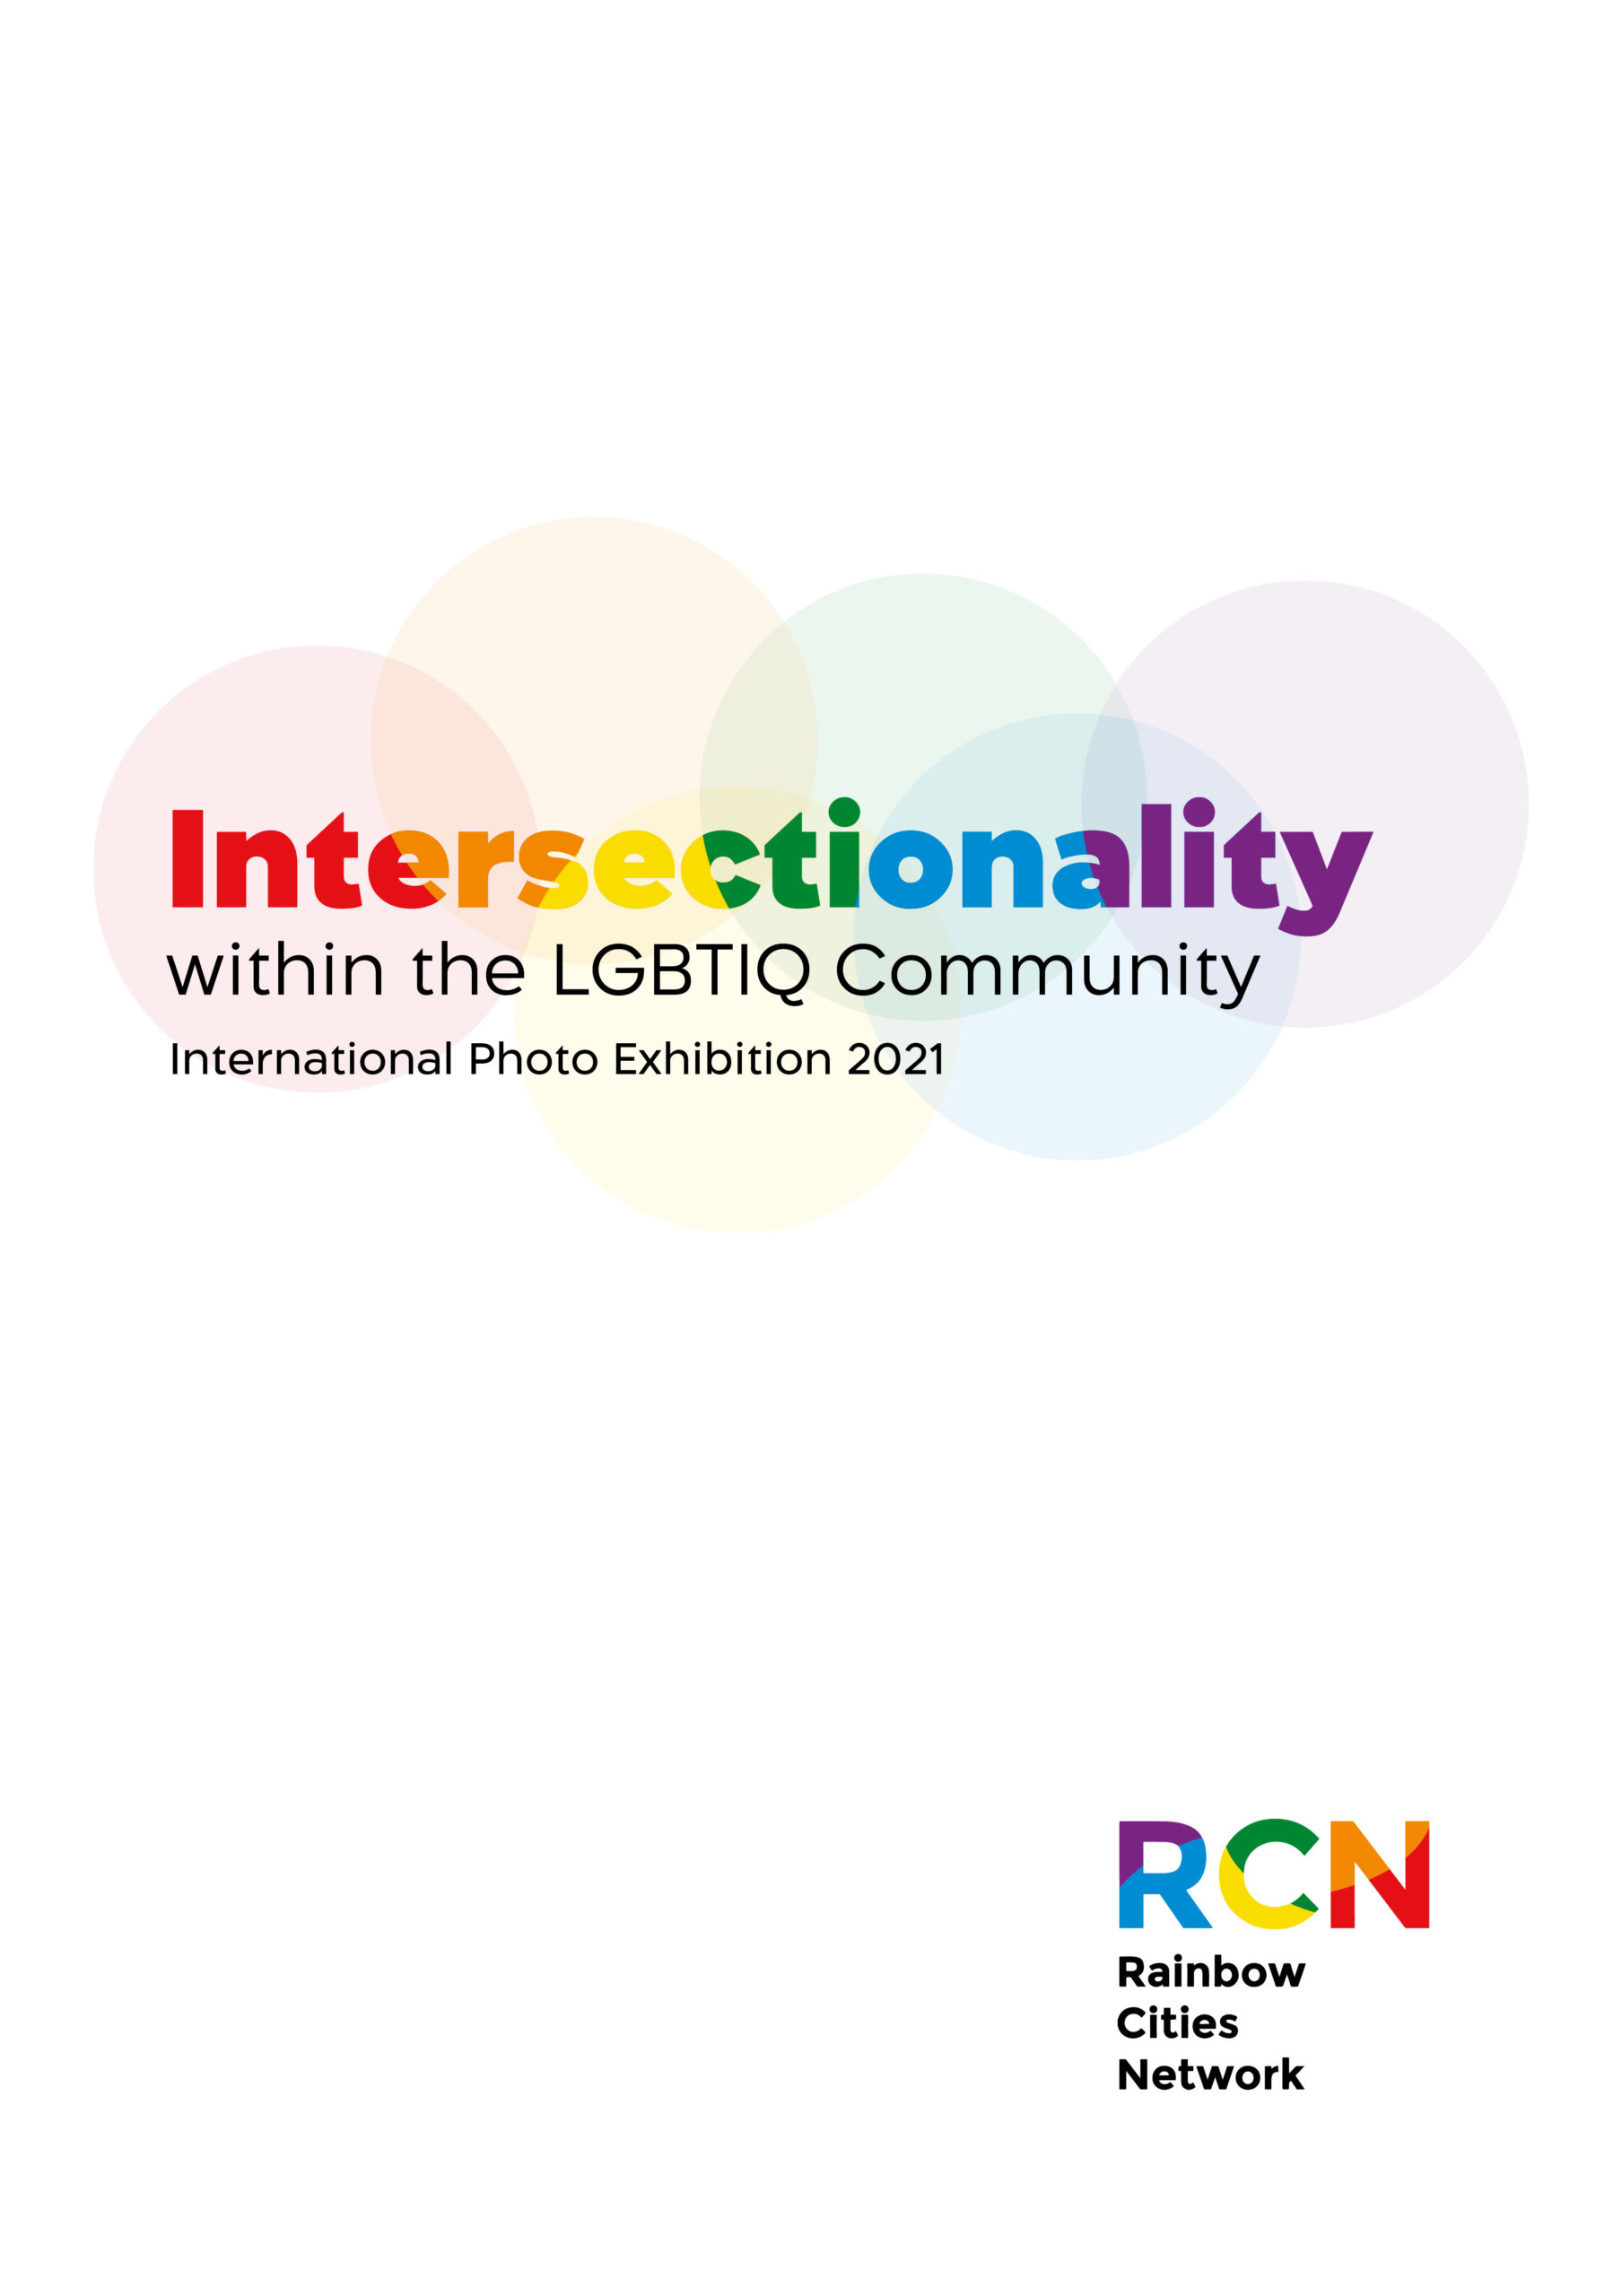 Intersectionality within the LGBTIQ Community 2021